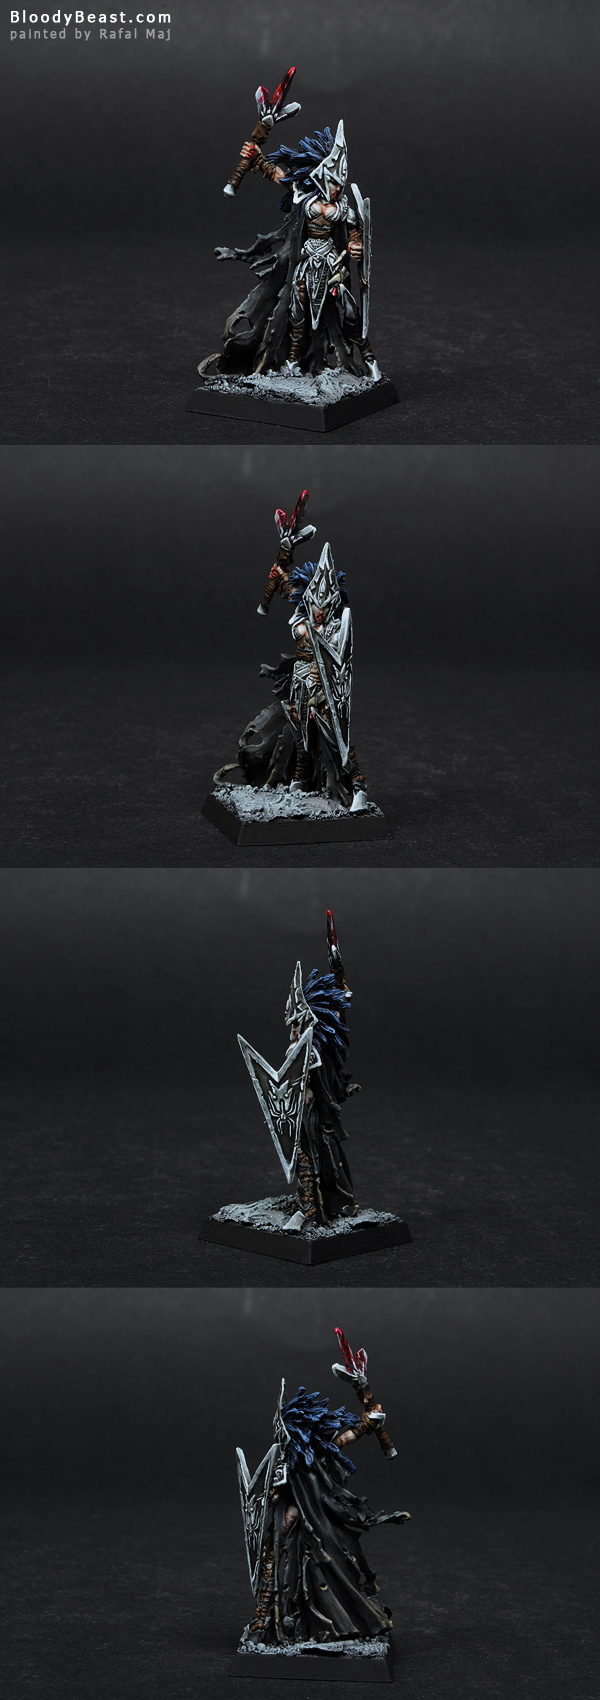 Darkreach Tierdeleira Priestess painted by Rafal Maj (BloodyBeast.com)